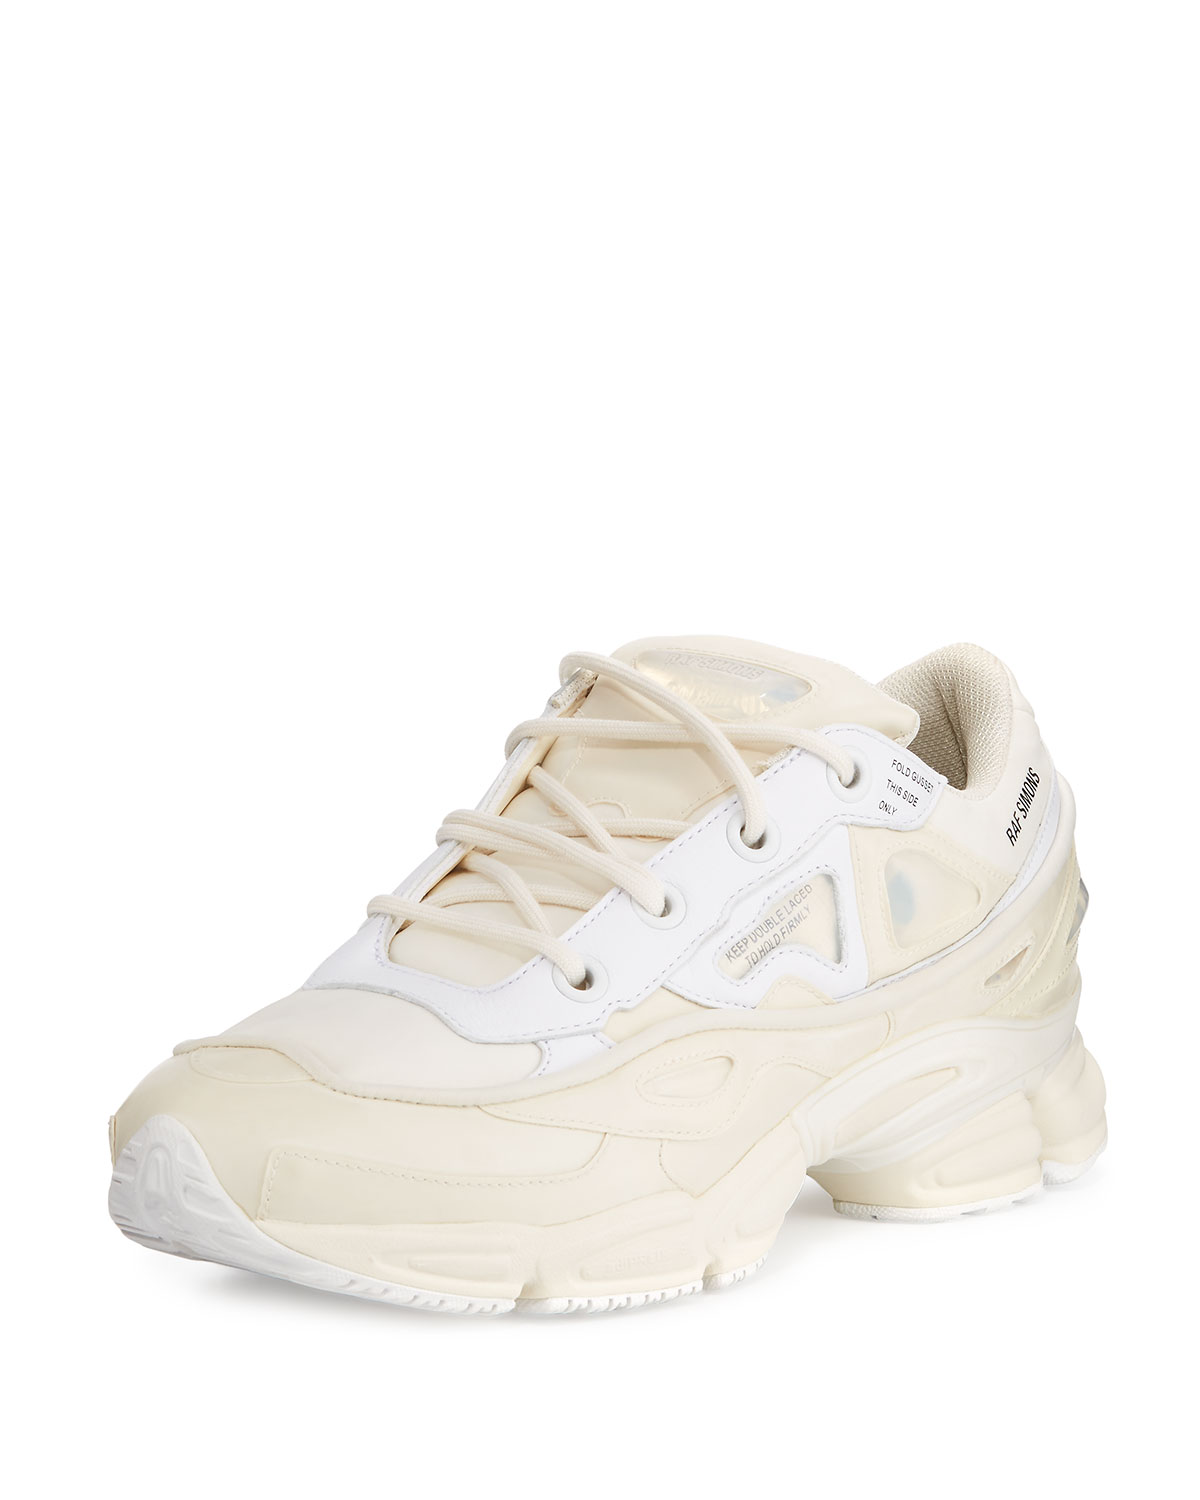 17f793f50694 adidas by Raf Simons Men s Ozweego Bunny Trainer Sneaker